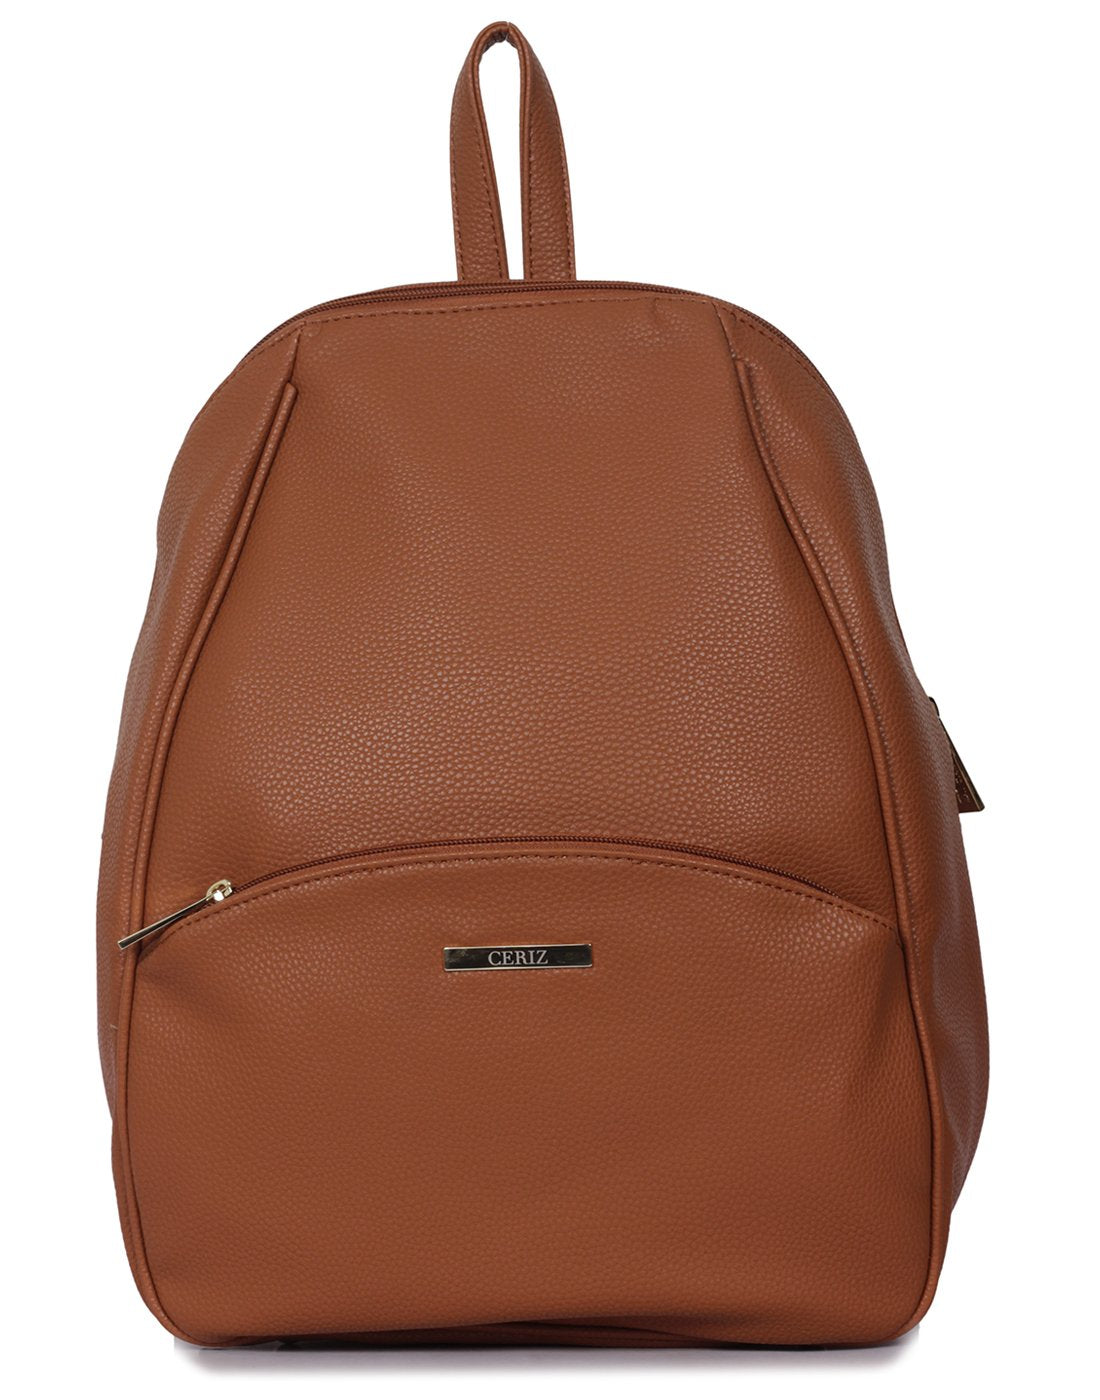 Laima Embellished Front Backpack